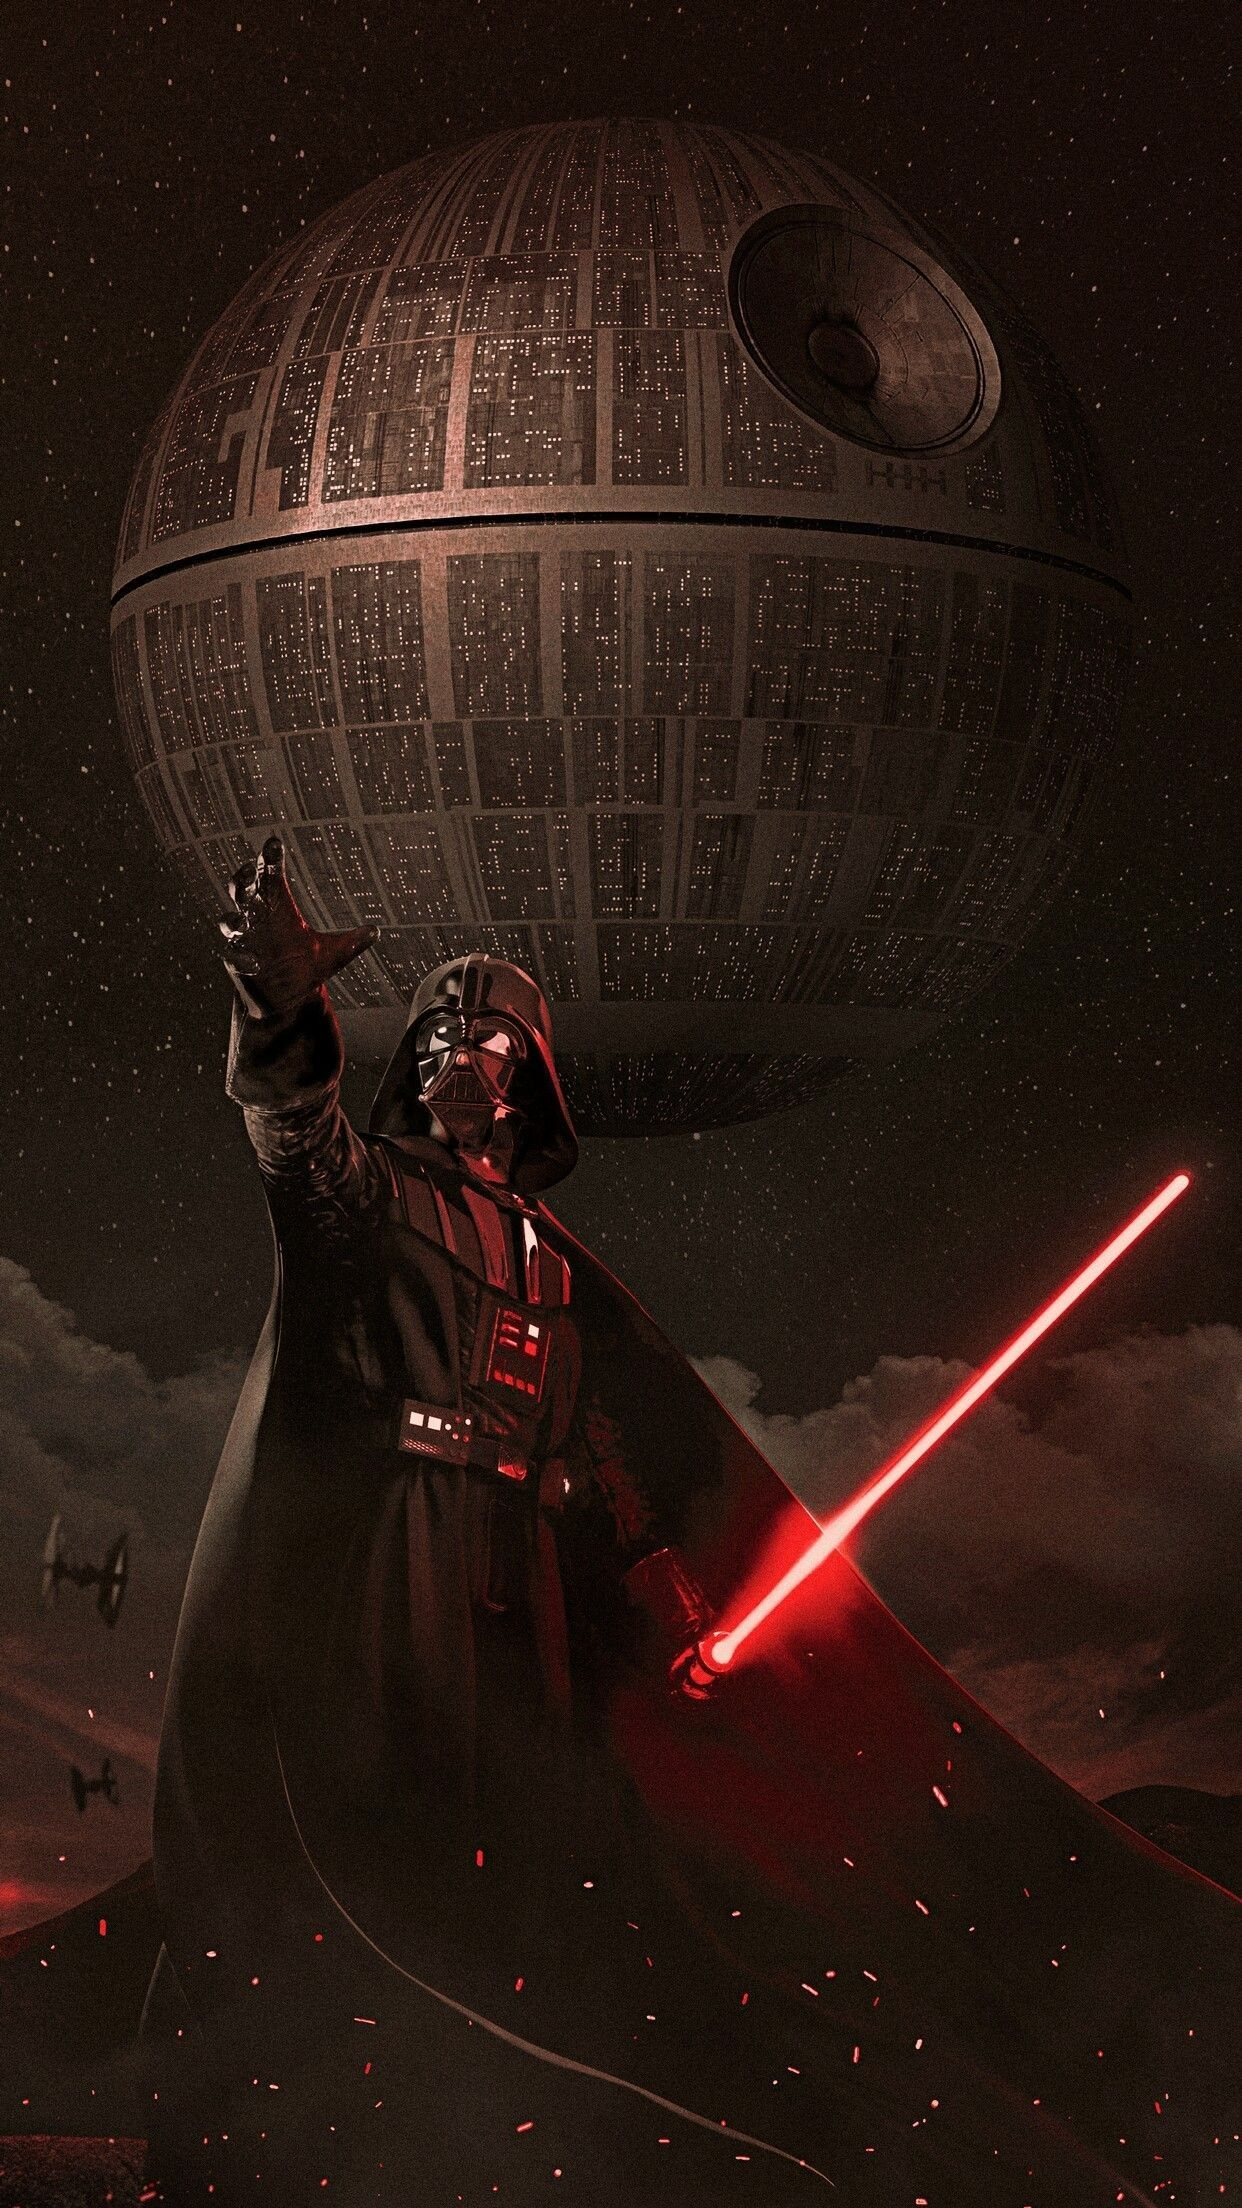 Wallpaper Darth Vader Star Wars Sith Dark Side Star Wars Art Star Wars Wallpaper